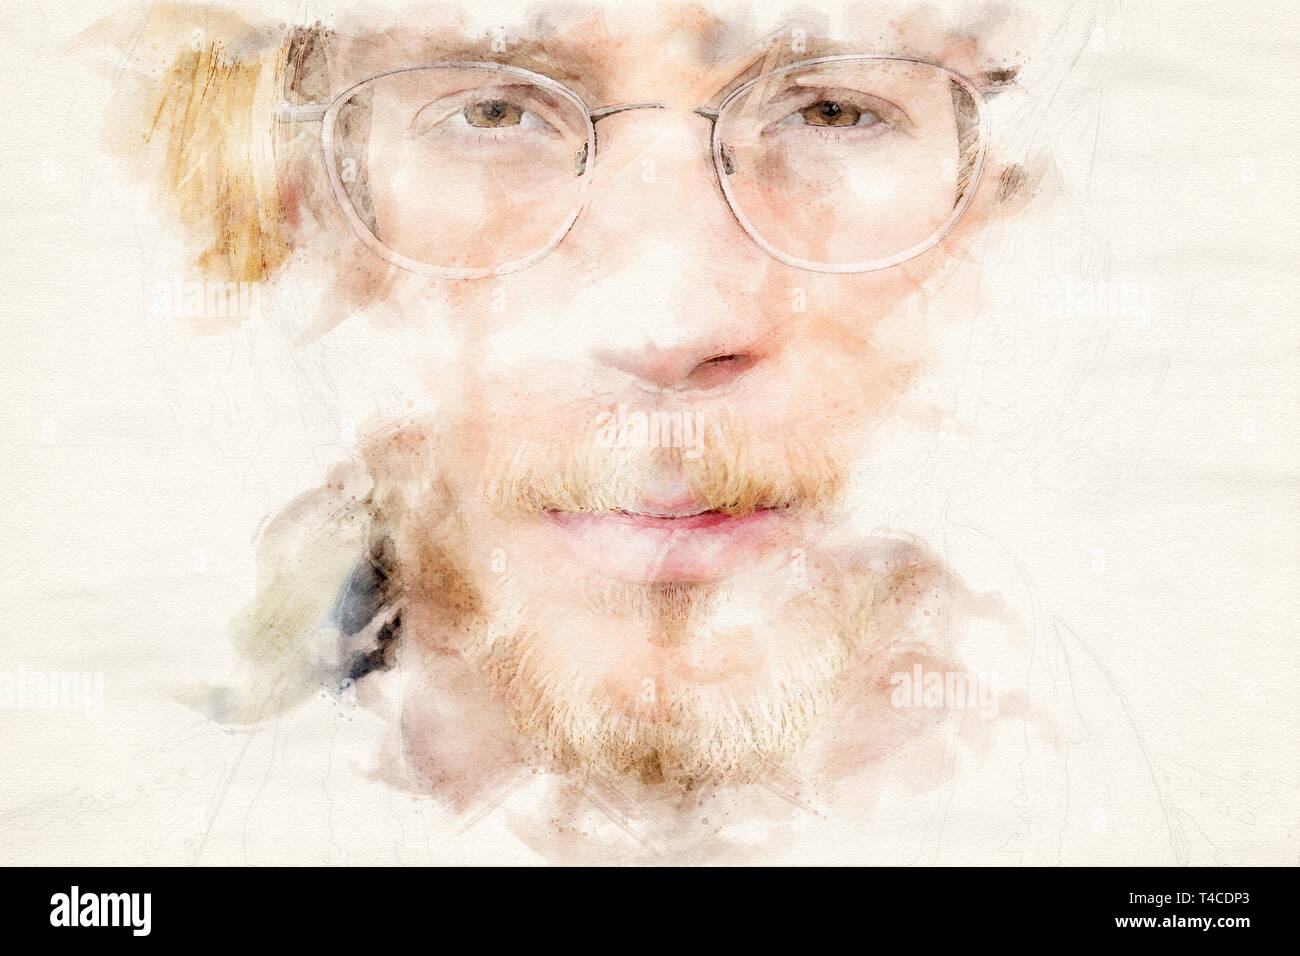 portrait of young bearded man in watercolors - Stock Image